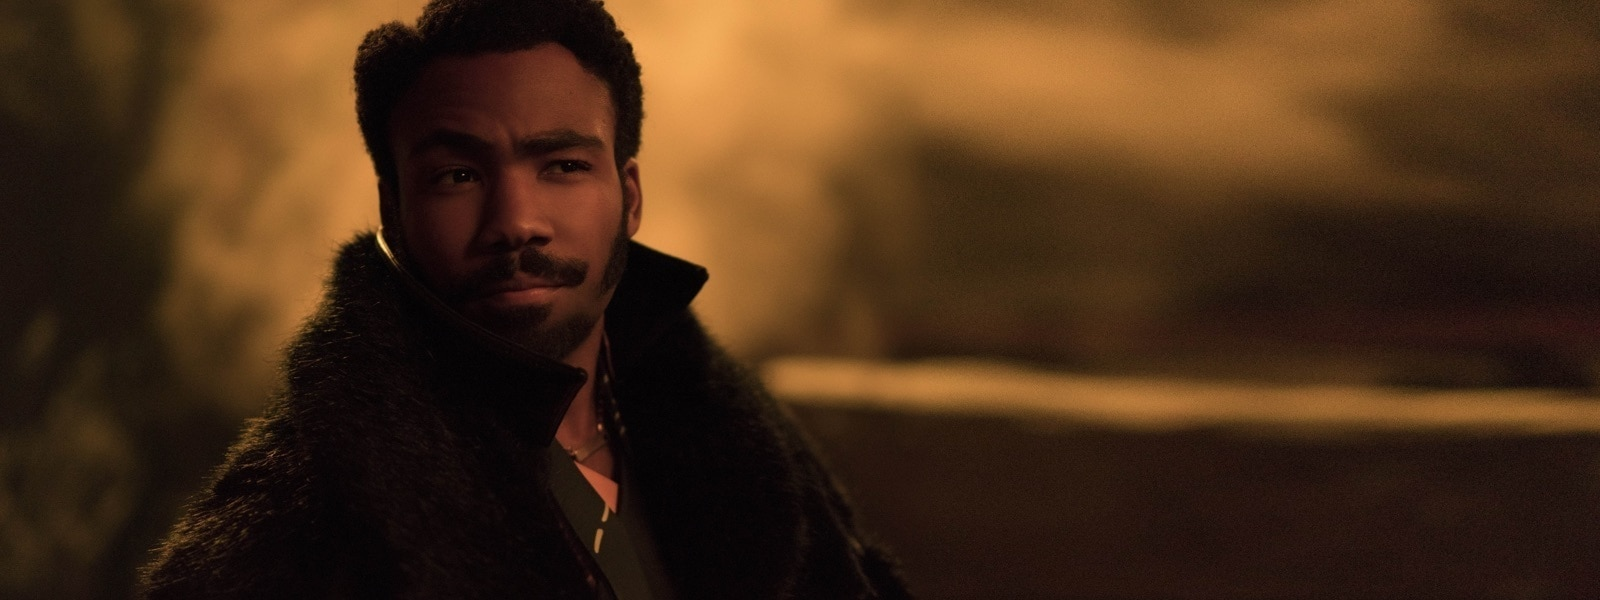 Solo: A Star Wars Story | Lando Character Profile